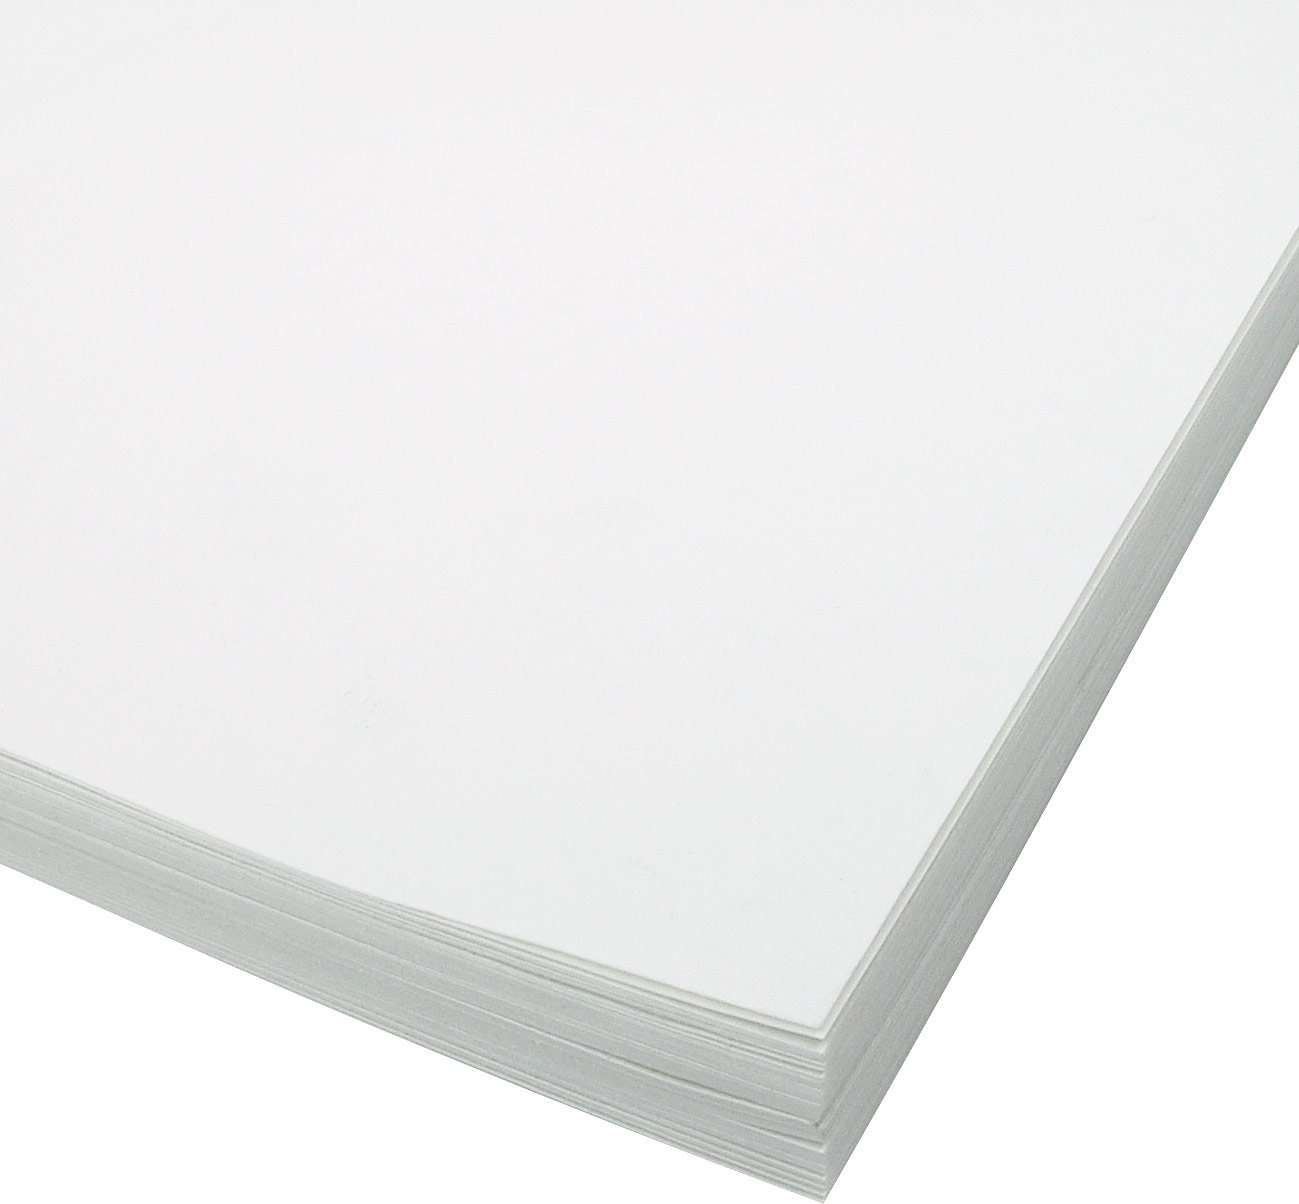 Bee Paper 100% Rag 140# Cold Press Watercolor Paper Pack, 22-Inch by 30-Inch, 25 Sheets per Pack